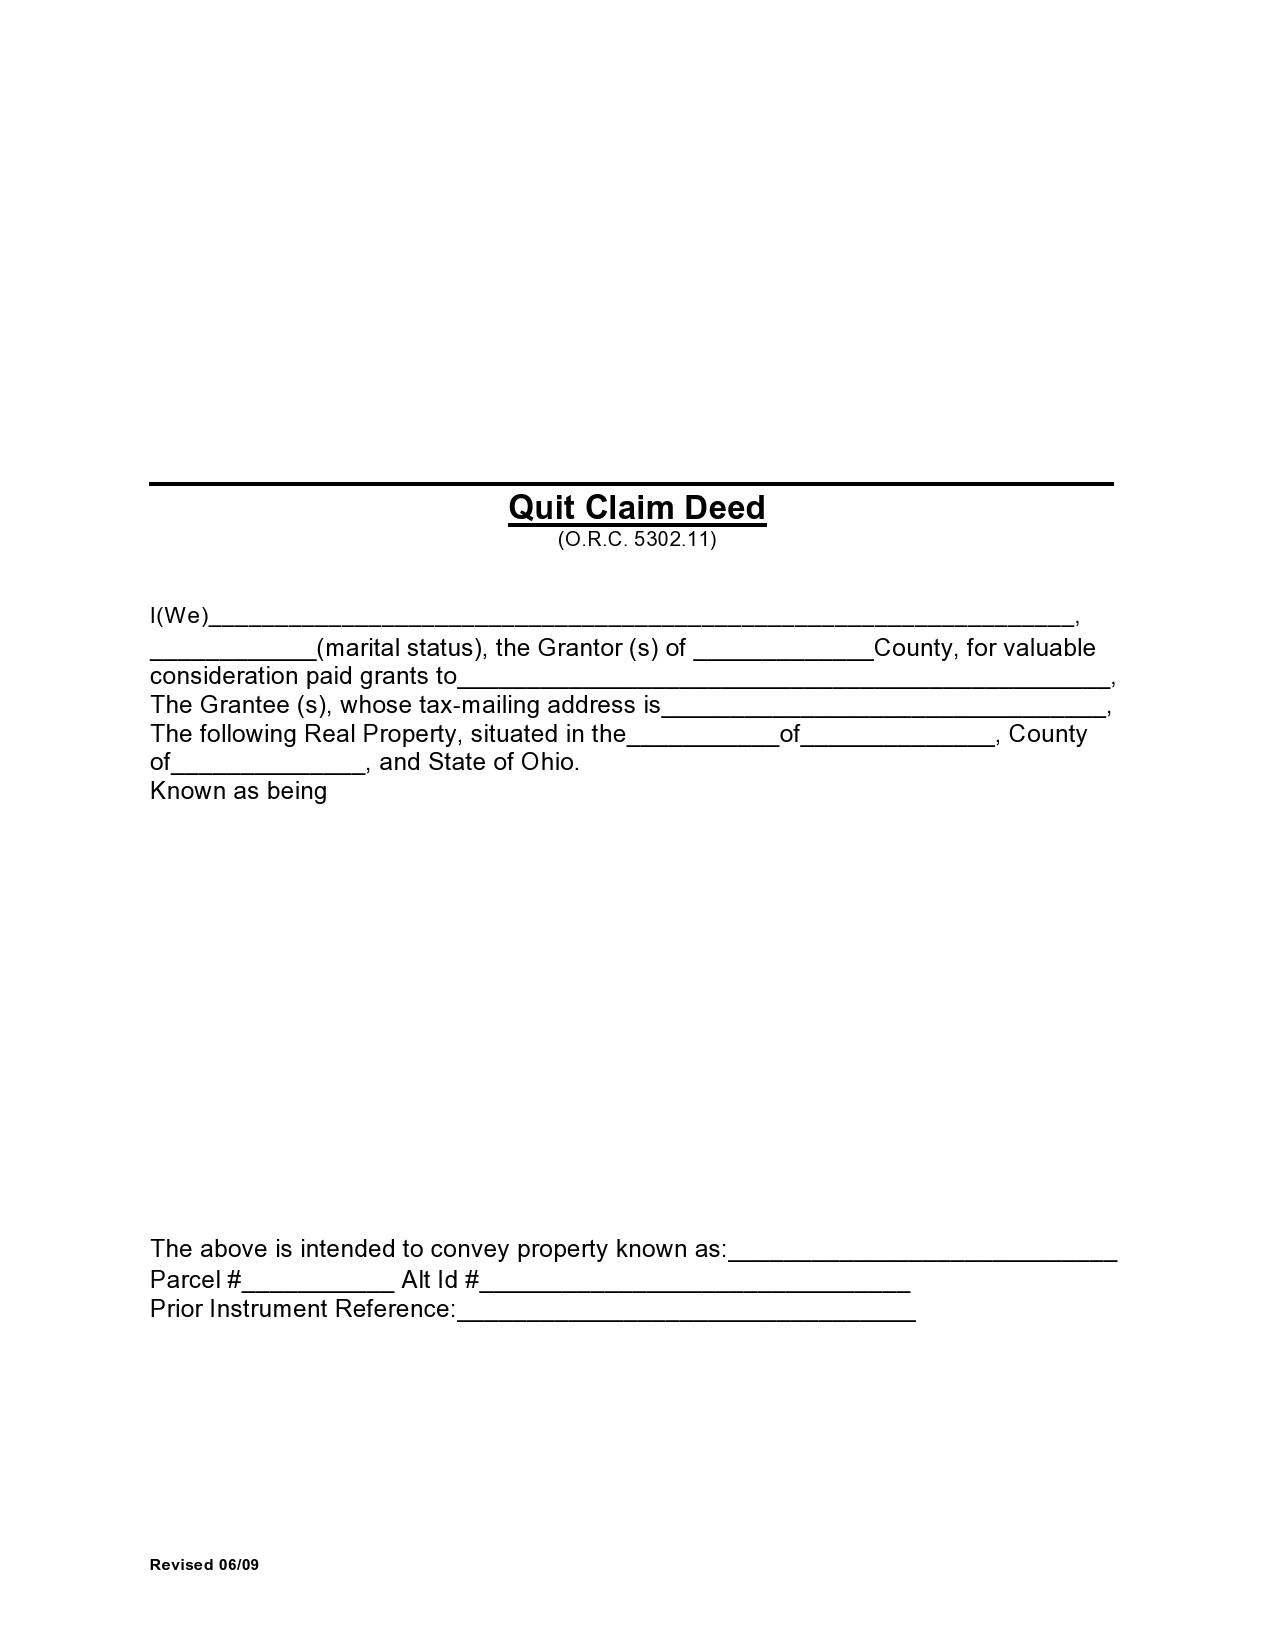 Free quit claim deed form 33